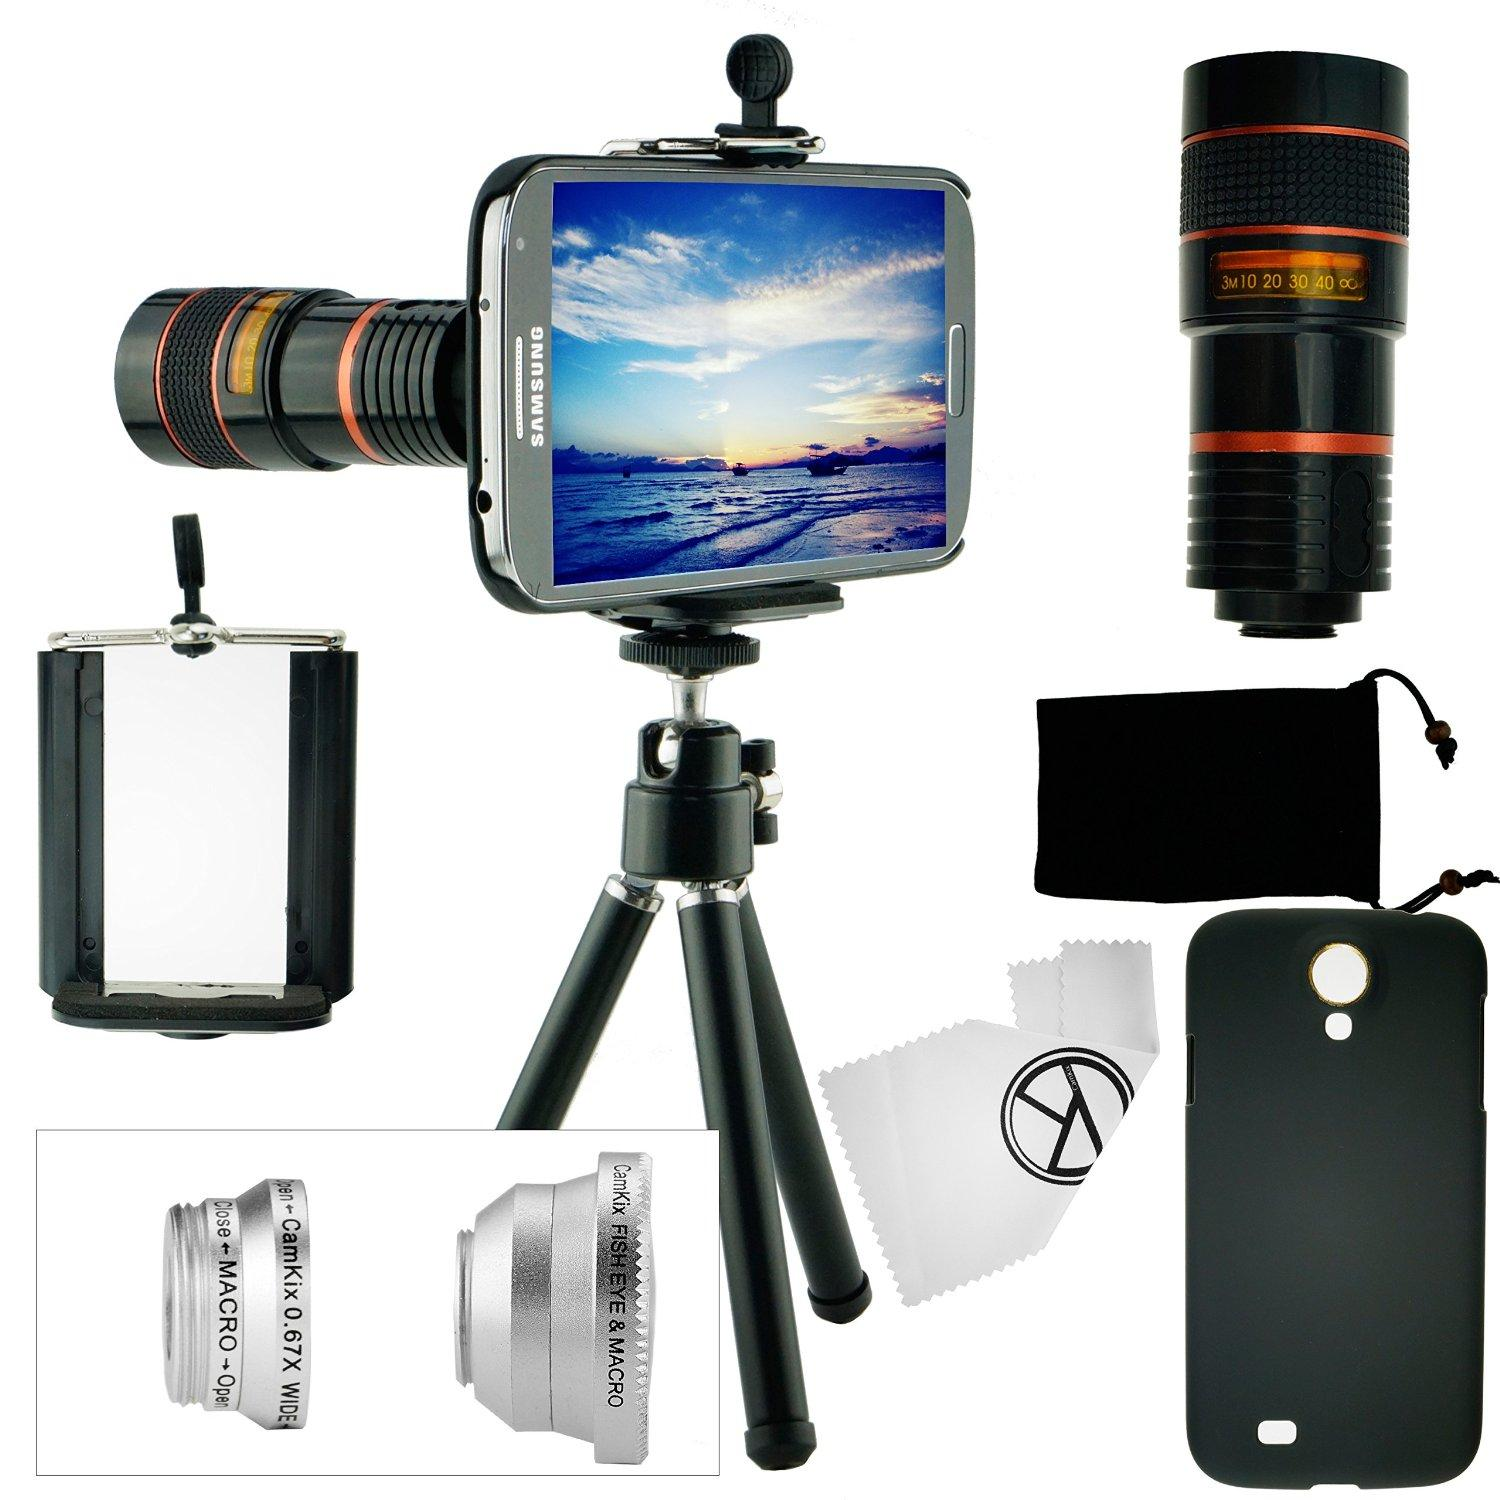 camkix camera lens kit for samsung galaxy s4. Black Bedroom Furniture Sets. Home Design Ideas